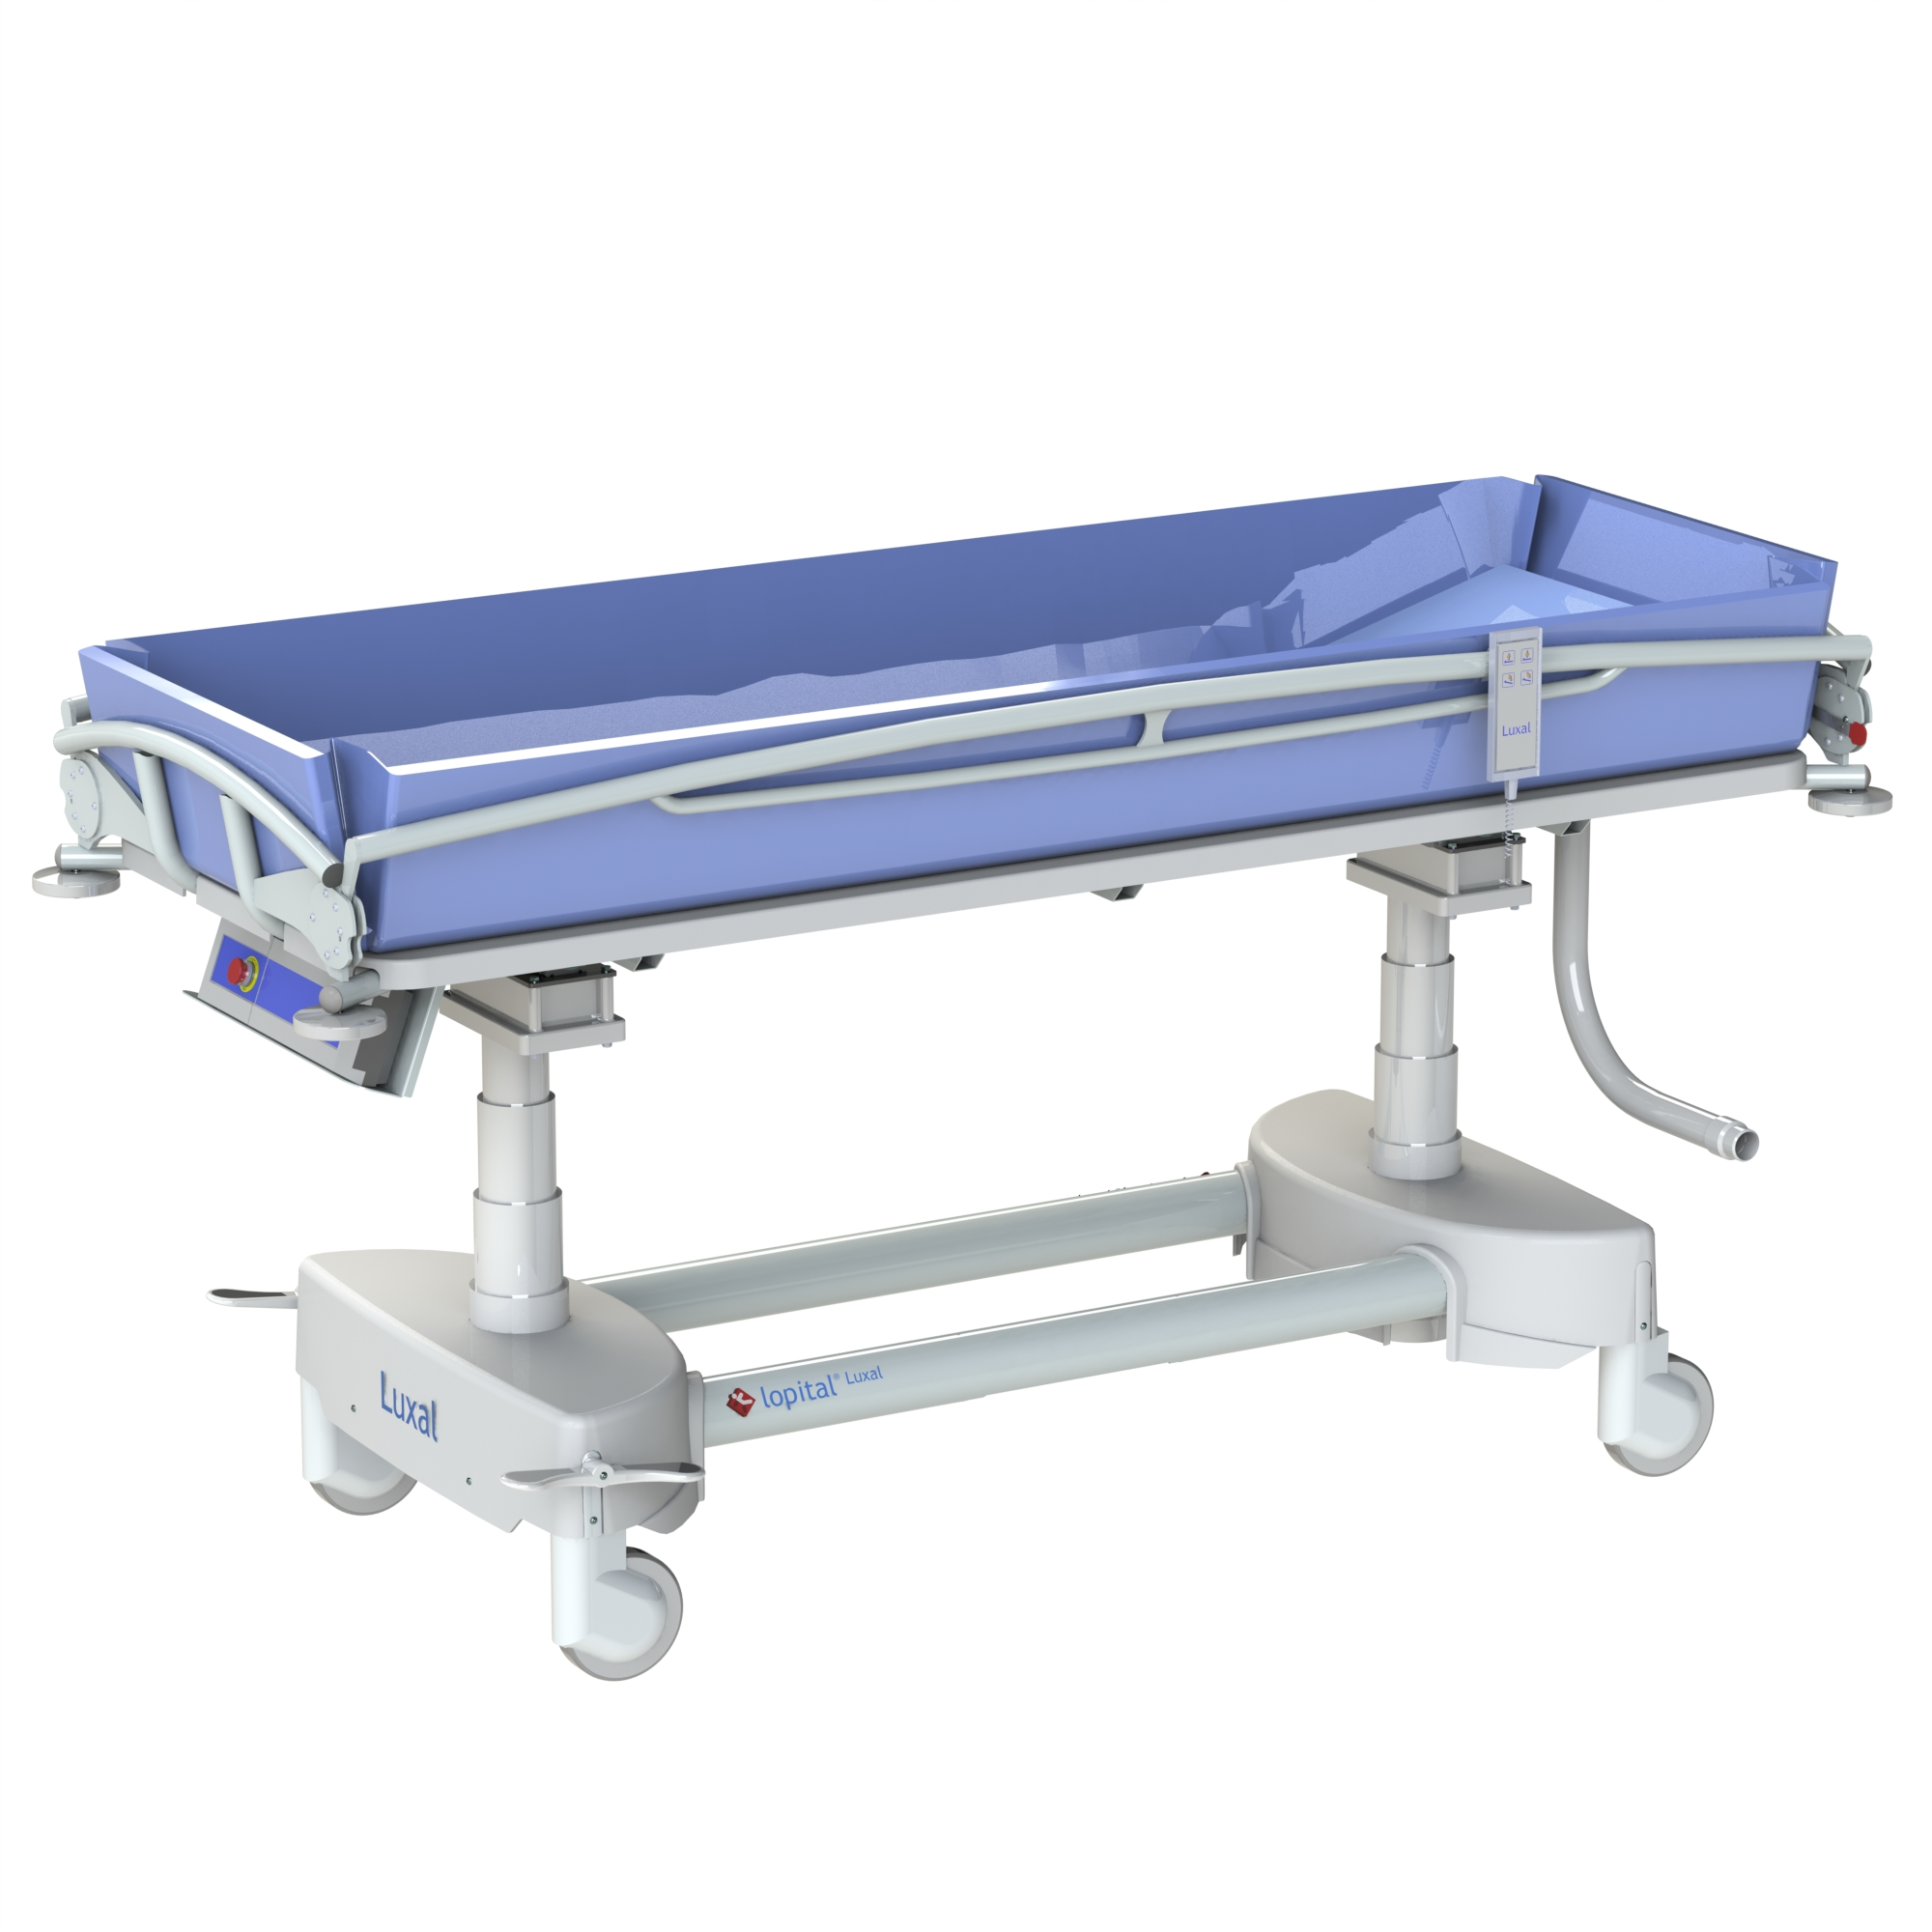 beds akron medical couches int treatment streamline mobile products height shower arjo variable clinical arjohuntleigh trolley